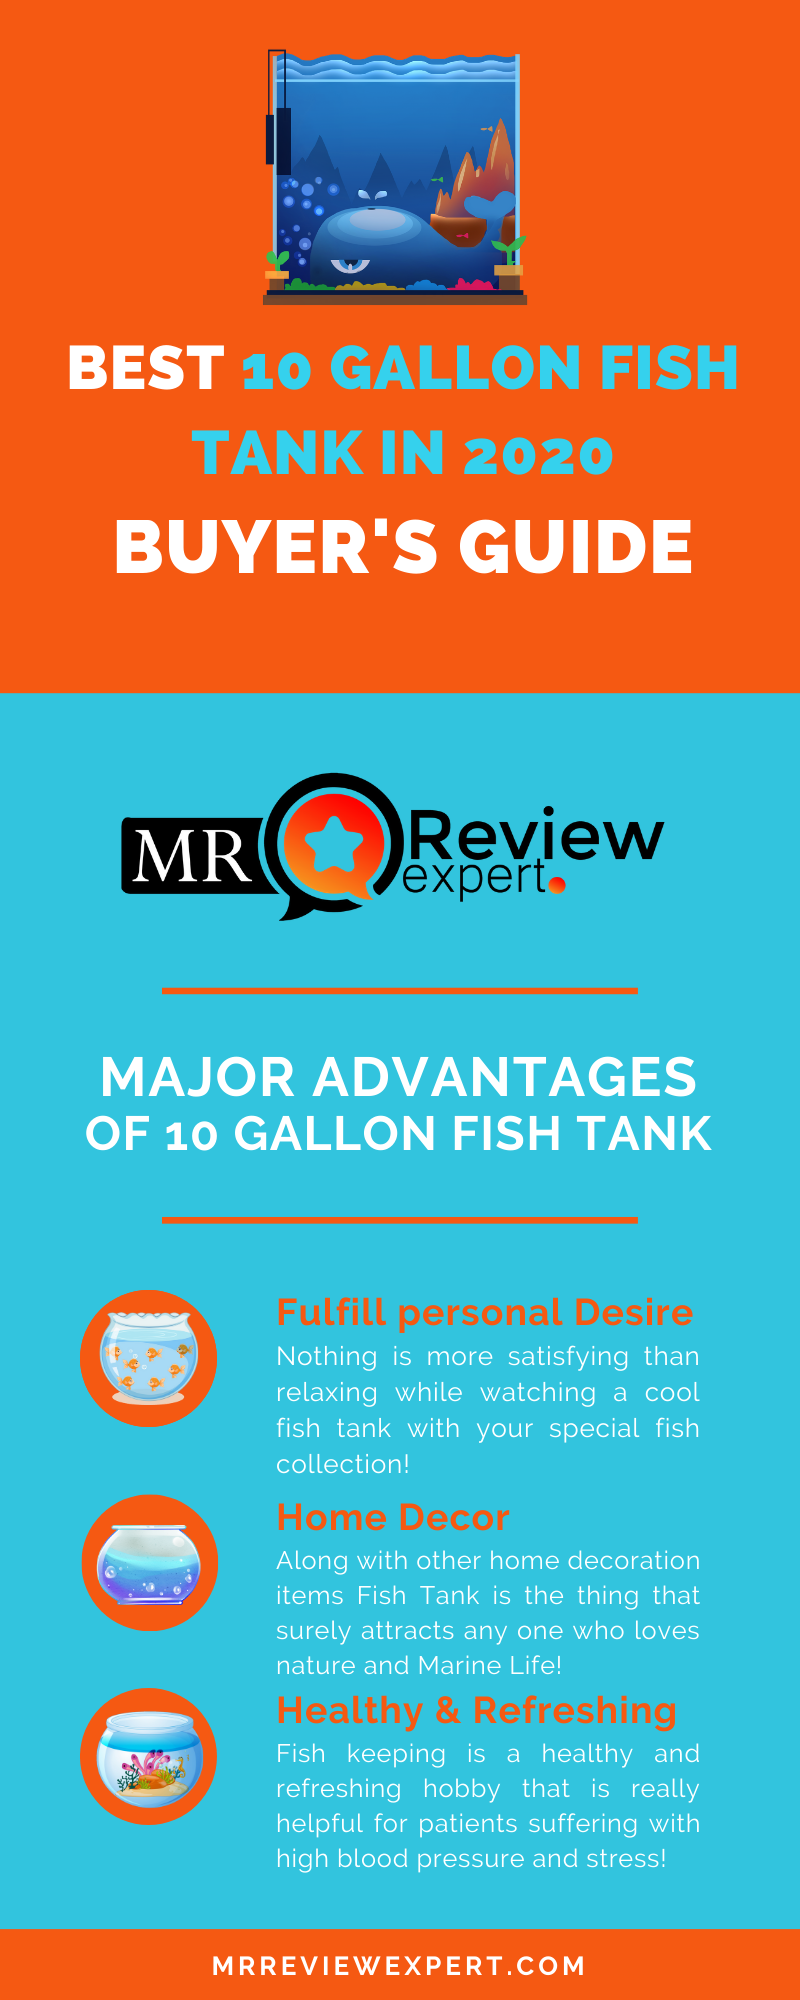 Best 10 gallon fish tank in 2020